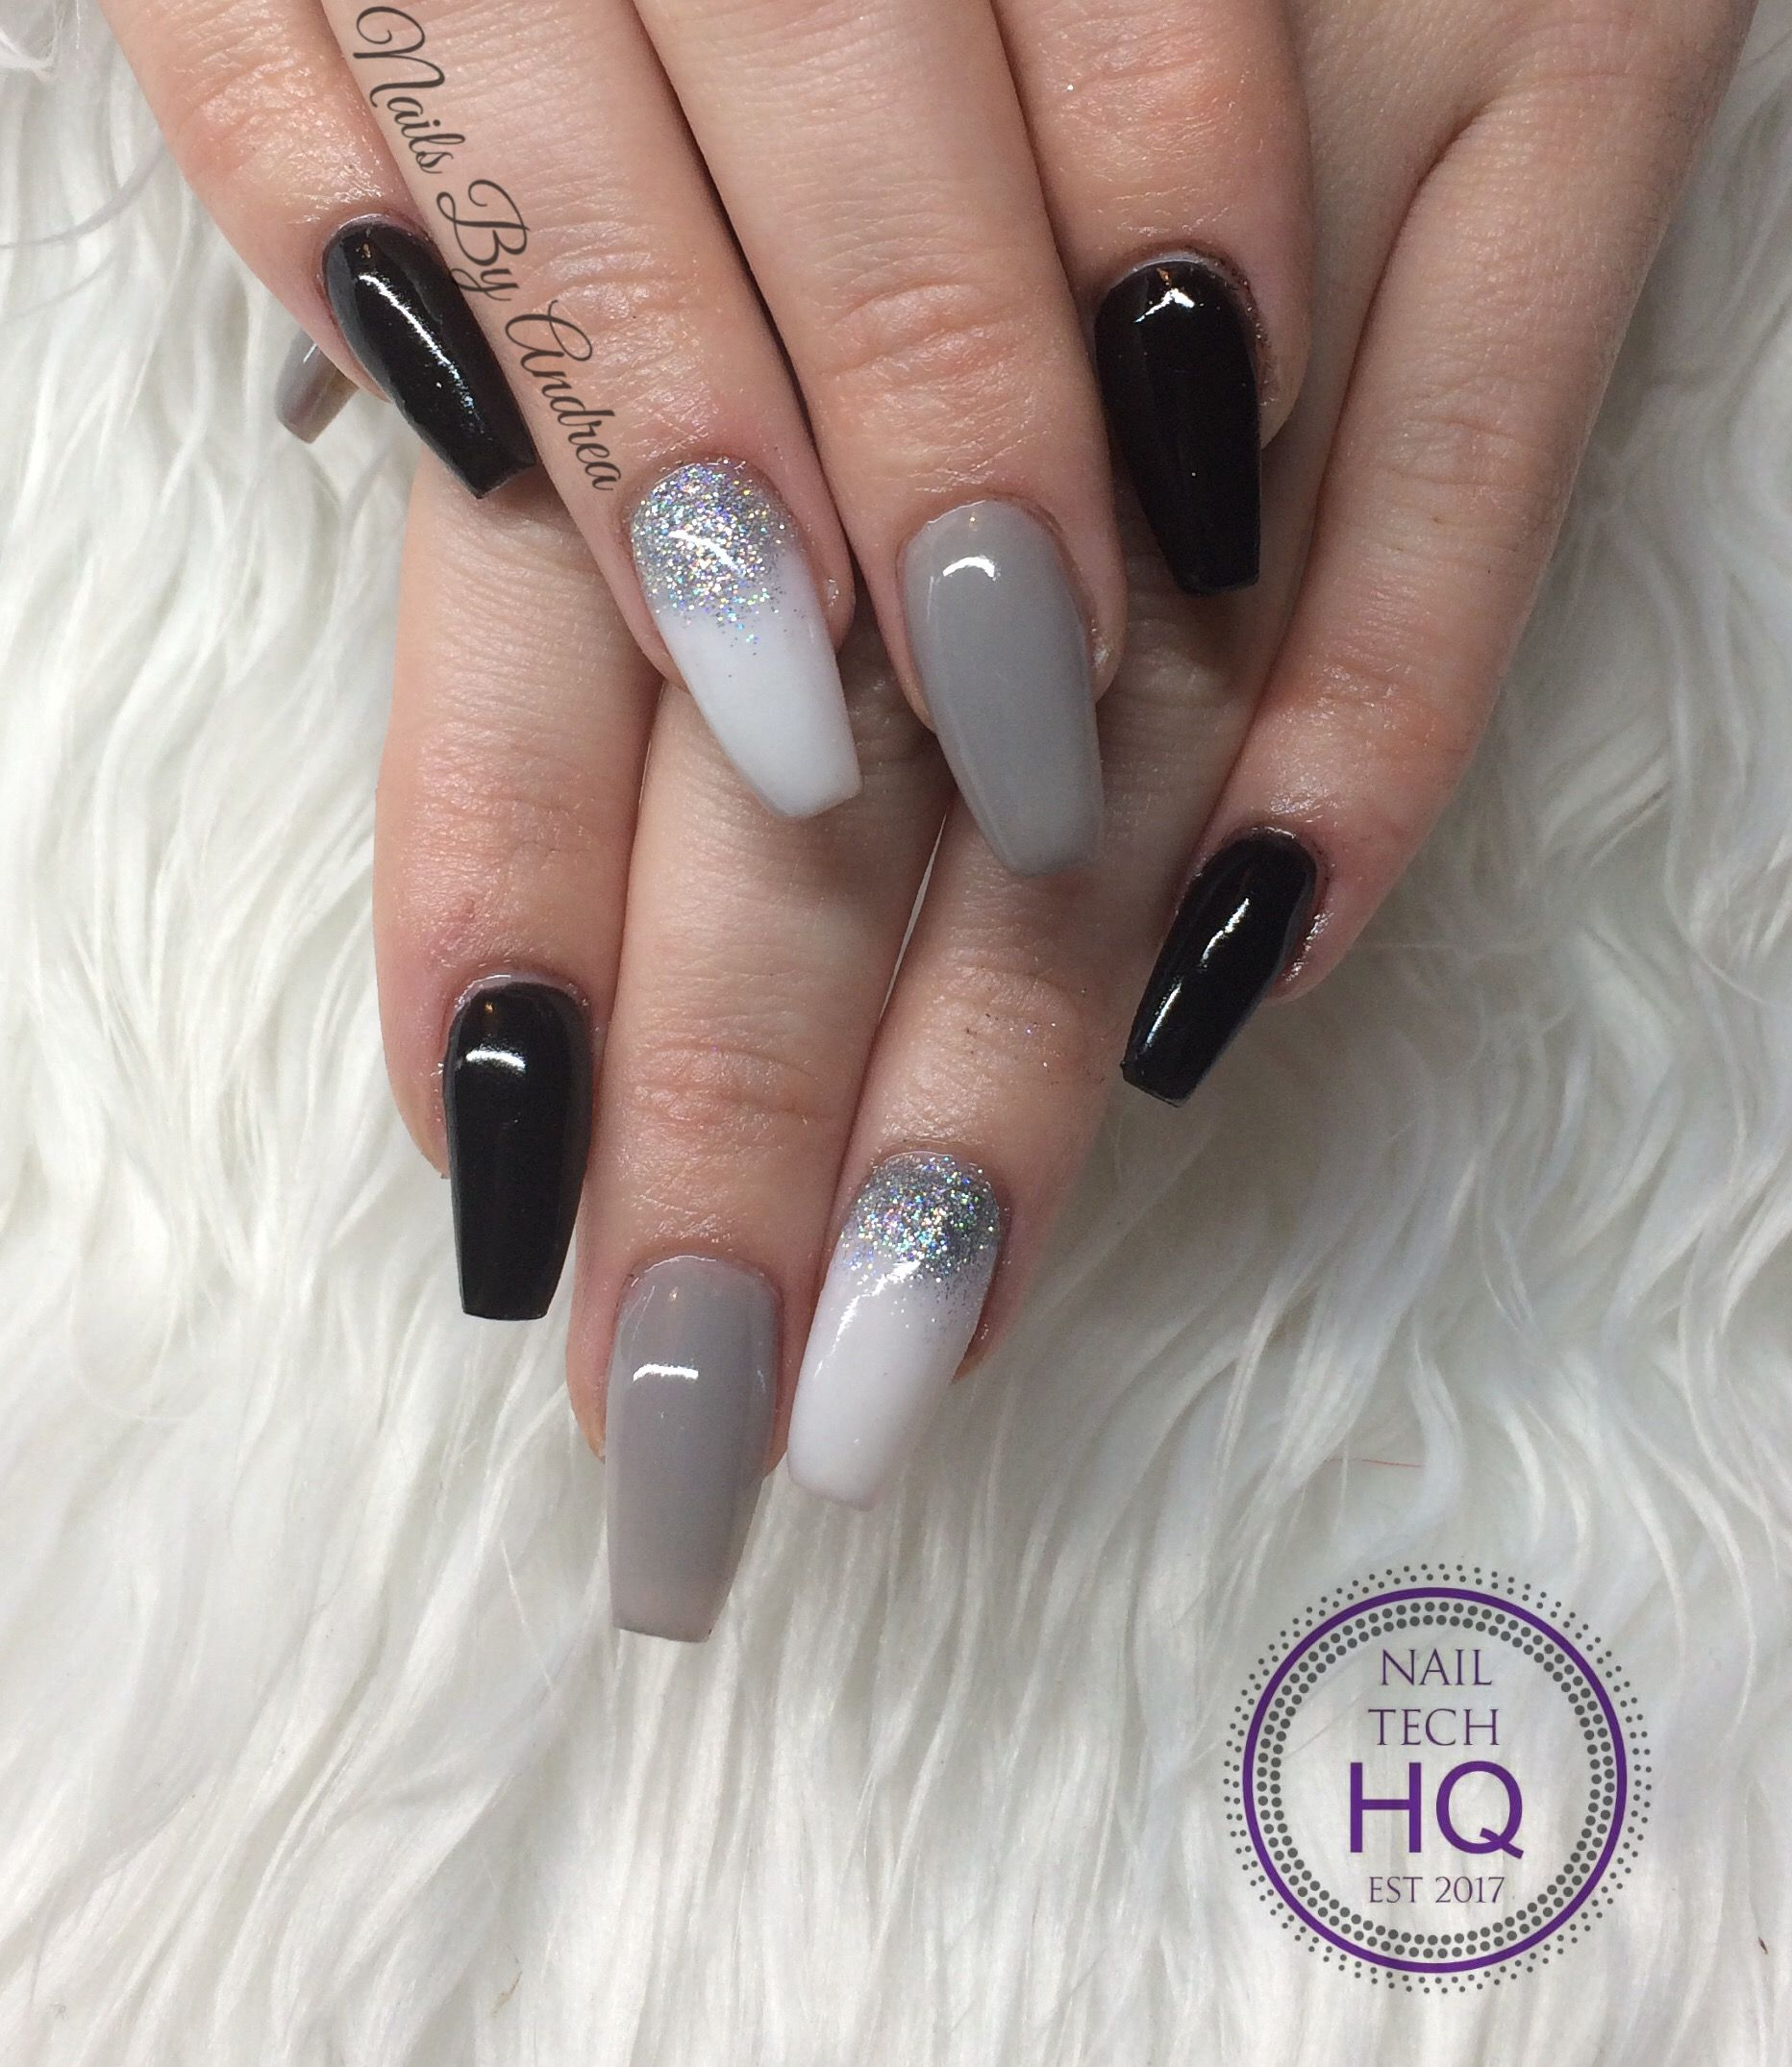 Black Grey White Nails With Silver Glitter Nails Nailart Notpolish Acrylic Sculpted Ballerina Coffinnai White Nail Art Black Ombre Nails Silver Nails